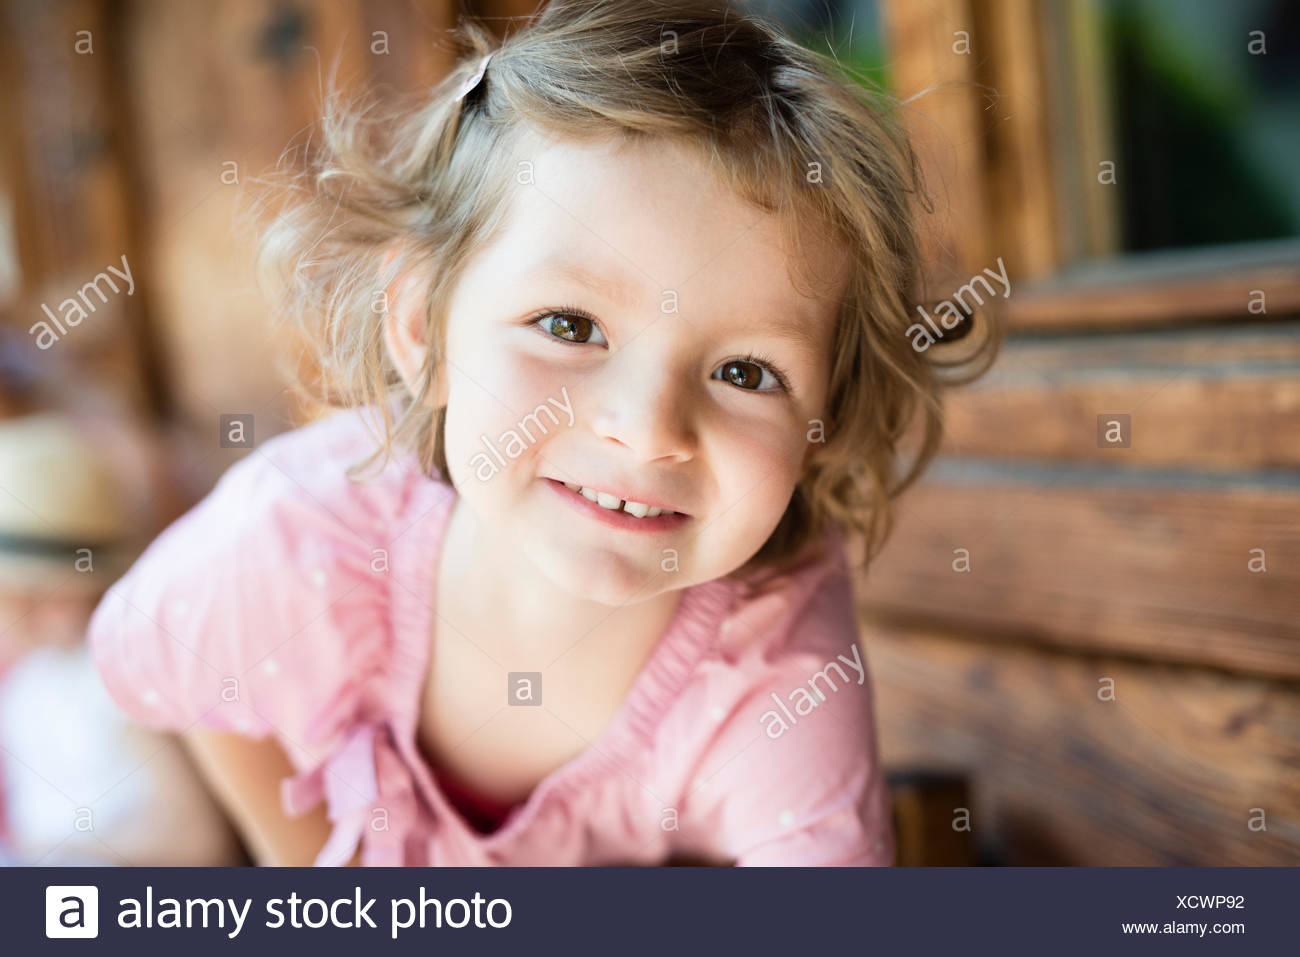 Portrait de petite fille aux cheveux blonds Photo Stock